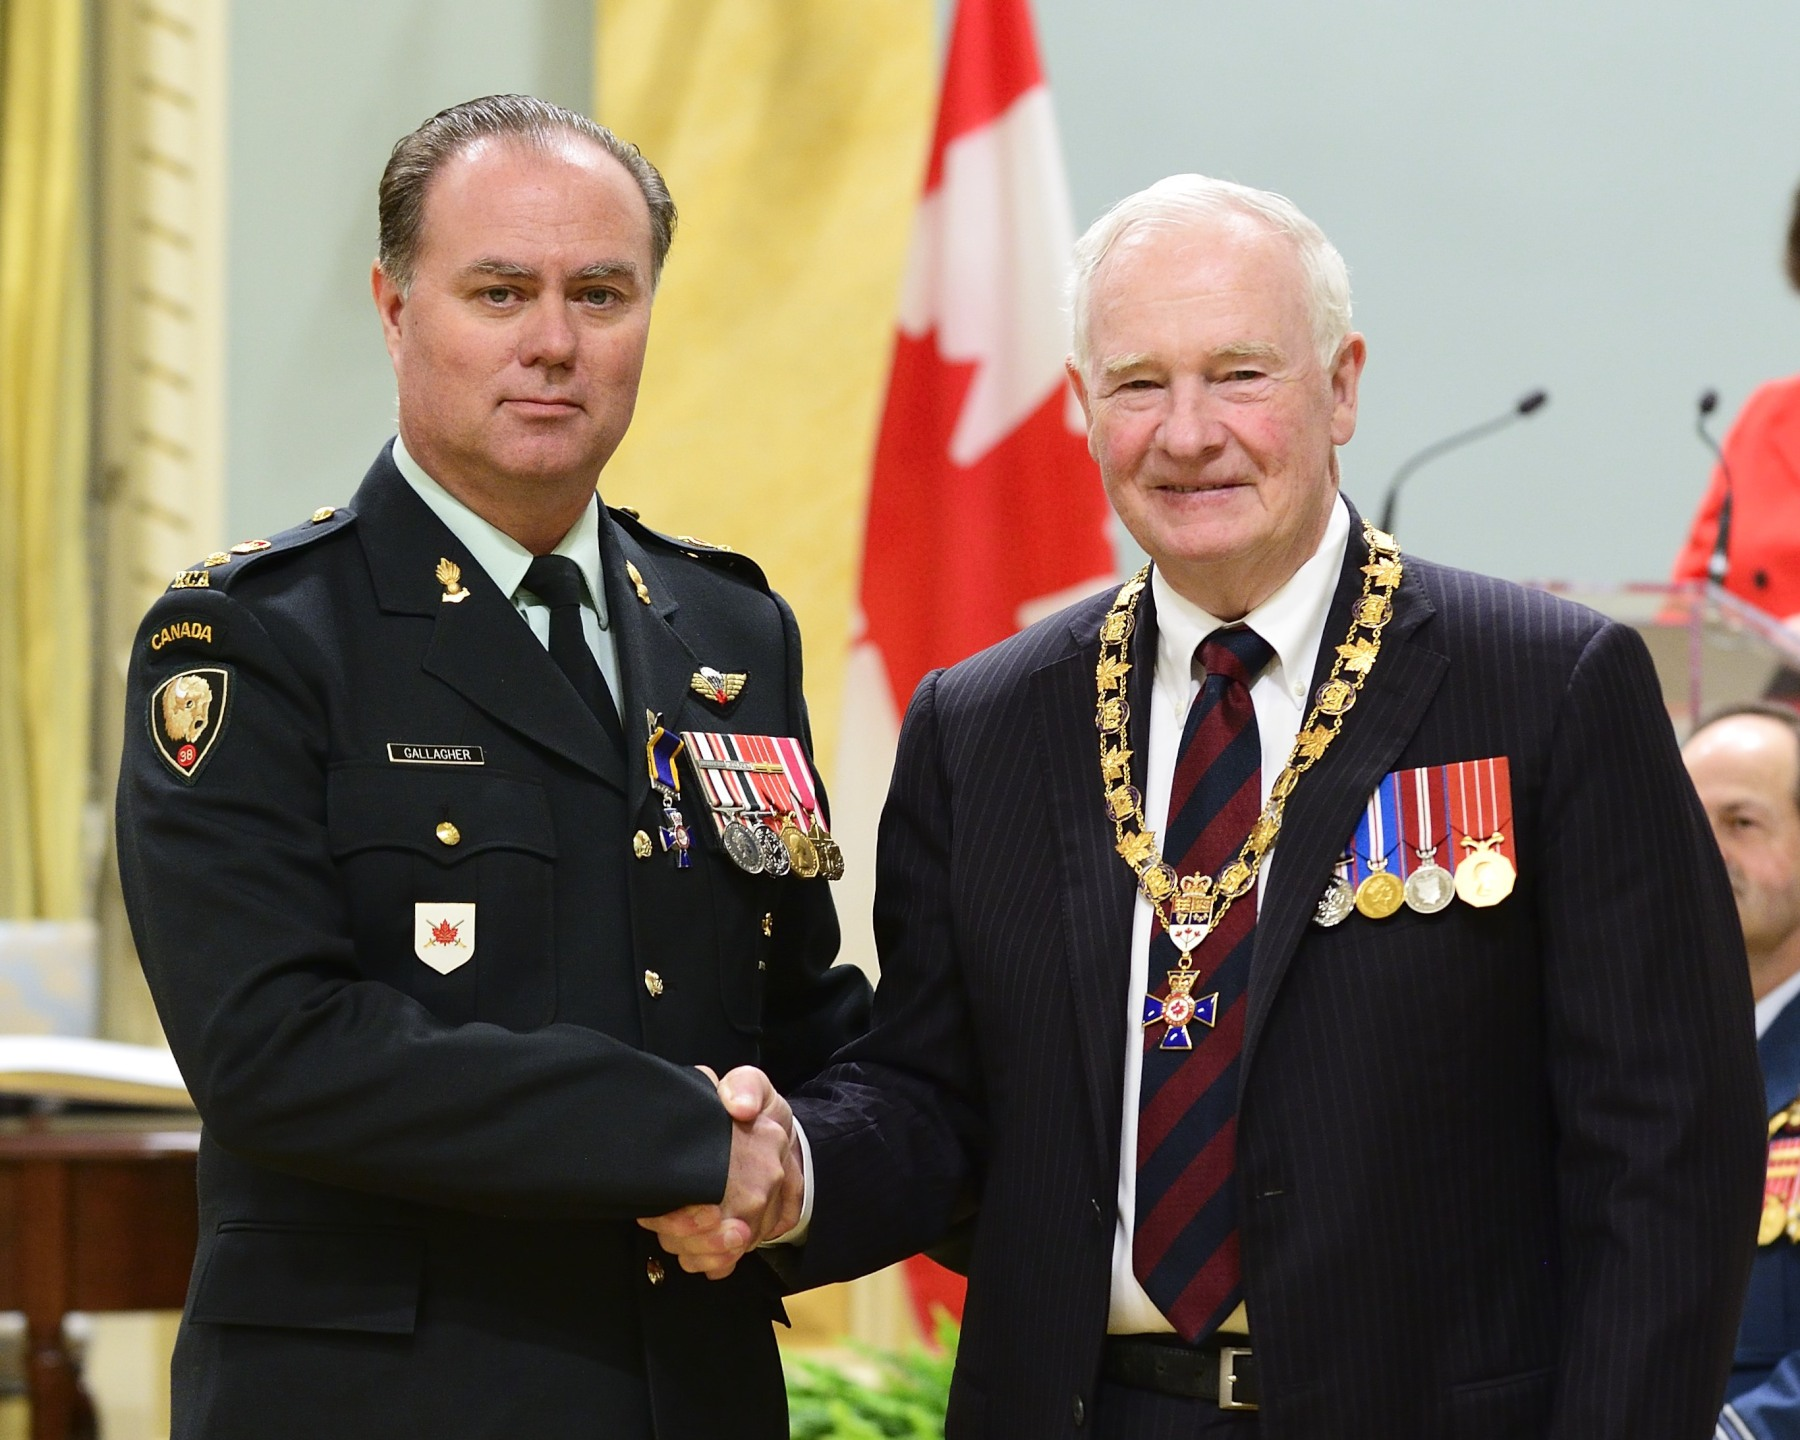 His Excellency presented the Order of Military Merit at the Member level (M.M.M.) to Major Stephen Gallagher, M.M.M., C.D., 4th Air Defence Regiment, Royal Canadian Artillery, Burton, New Brunswick.